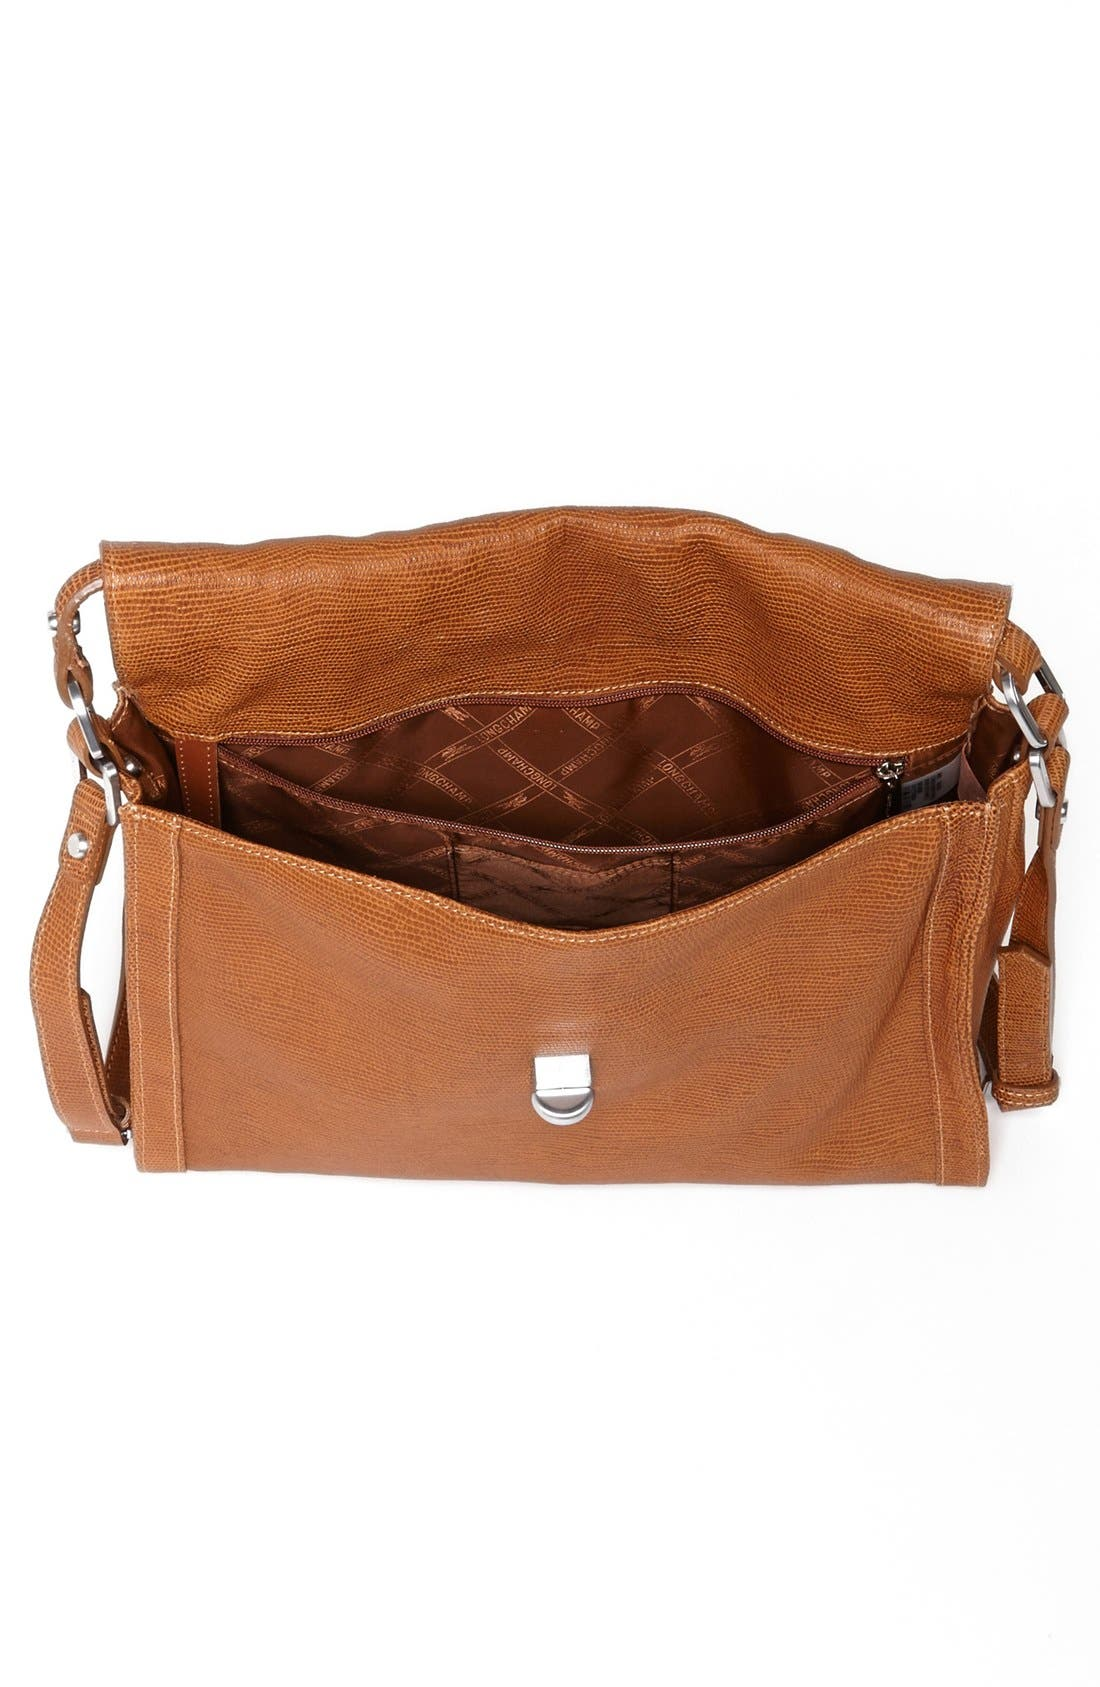 Alternate Image 3  - Longchamp 'Sport' Leather Crossbody Bag